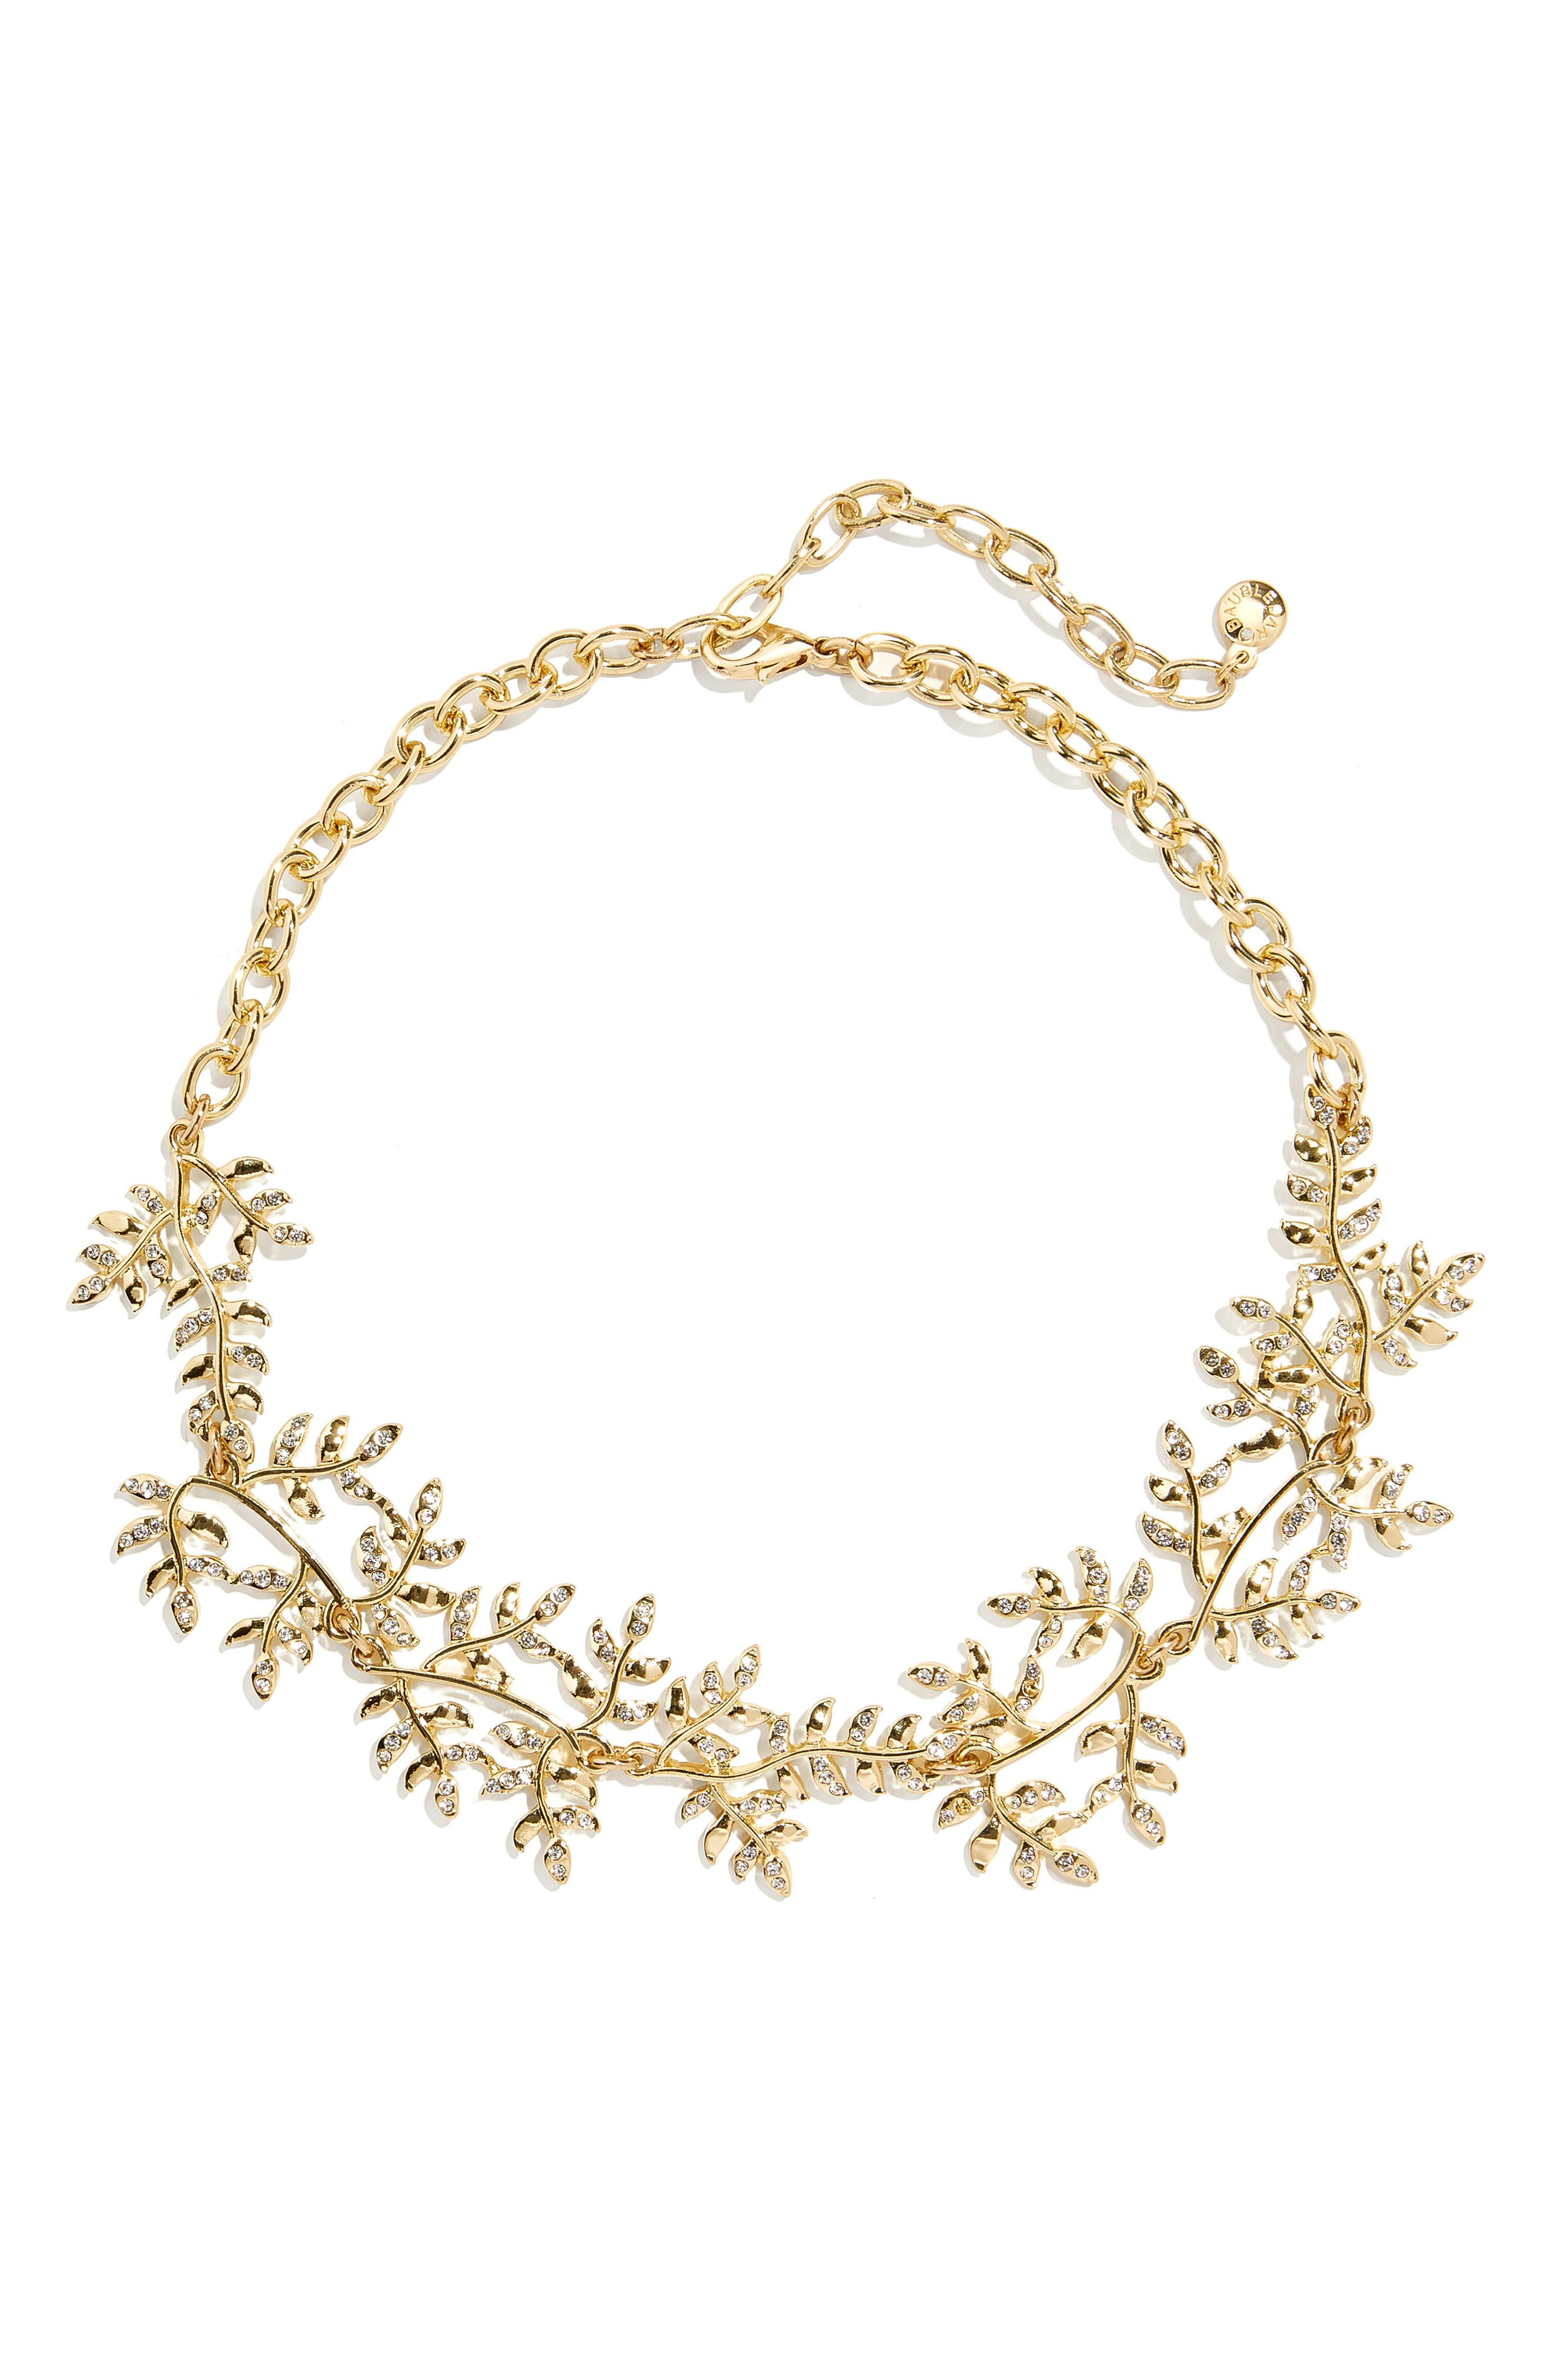 BAUBLEBAR Lilith Collar Necklace, Main, color, 710